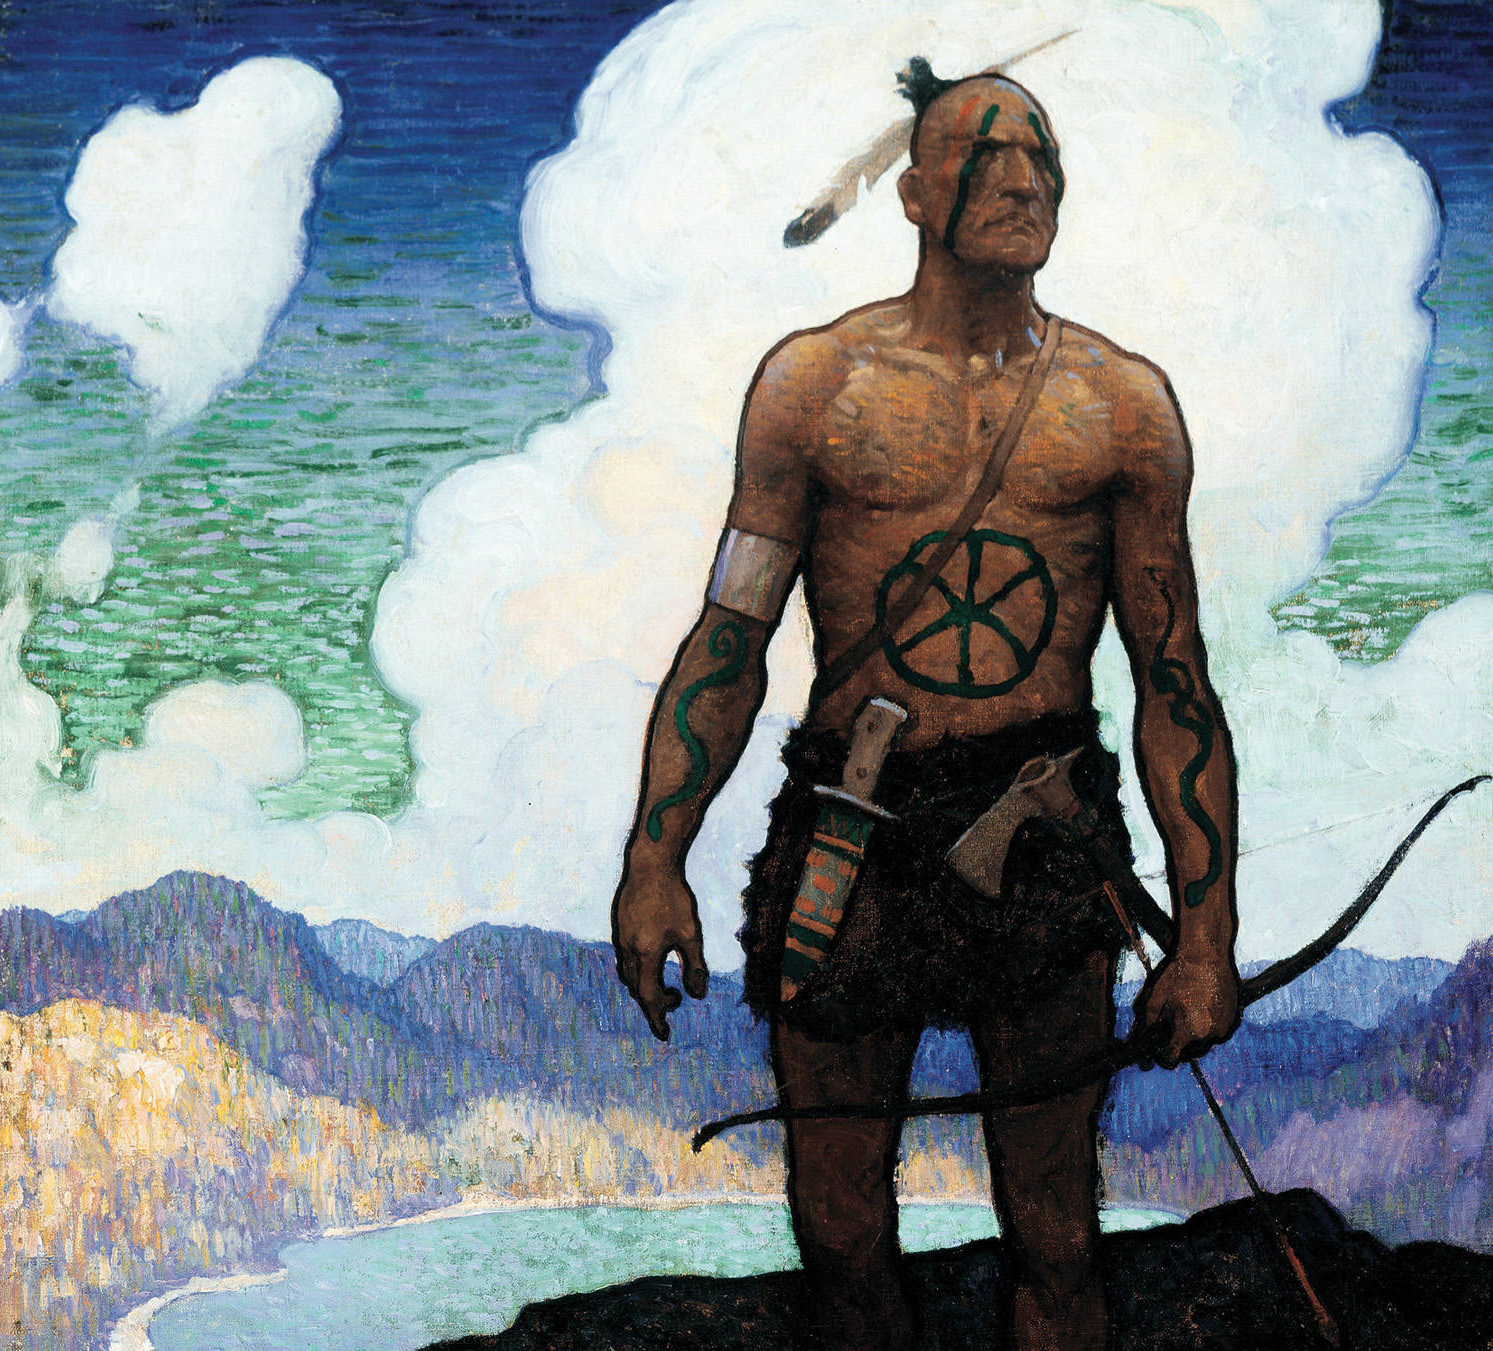 Cover Illustration for The Last of the Mohicans, N.C. Wyeth (1919)